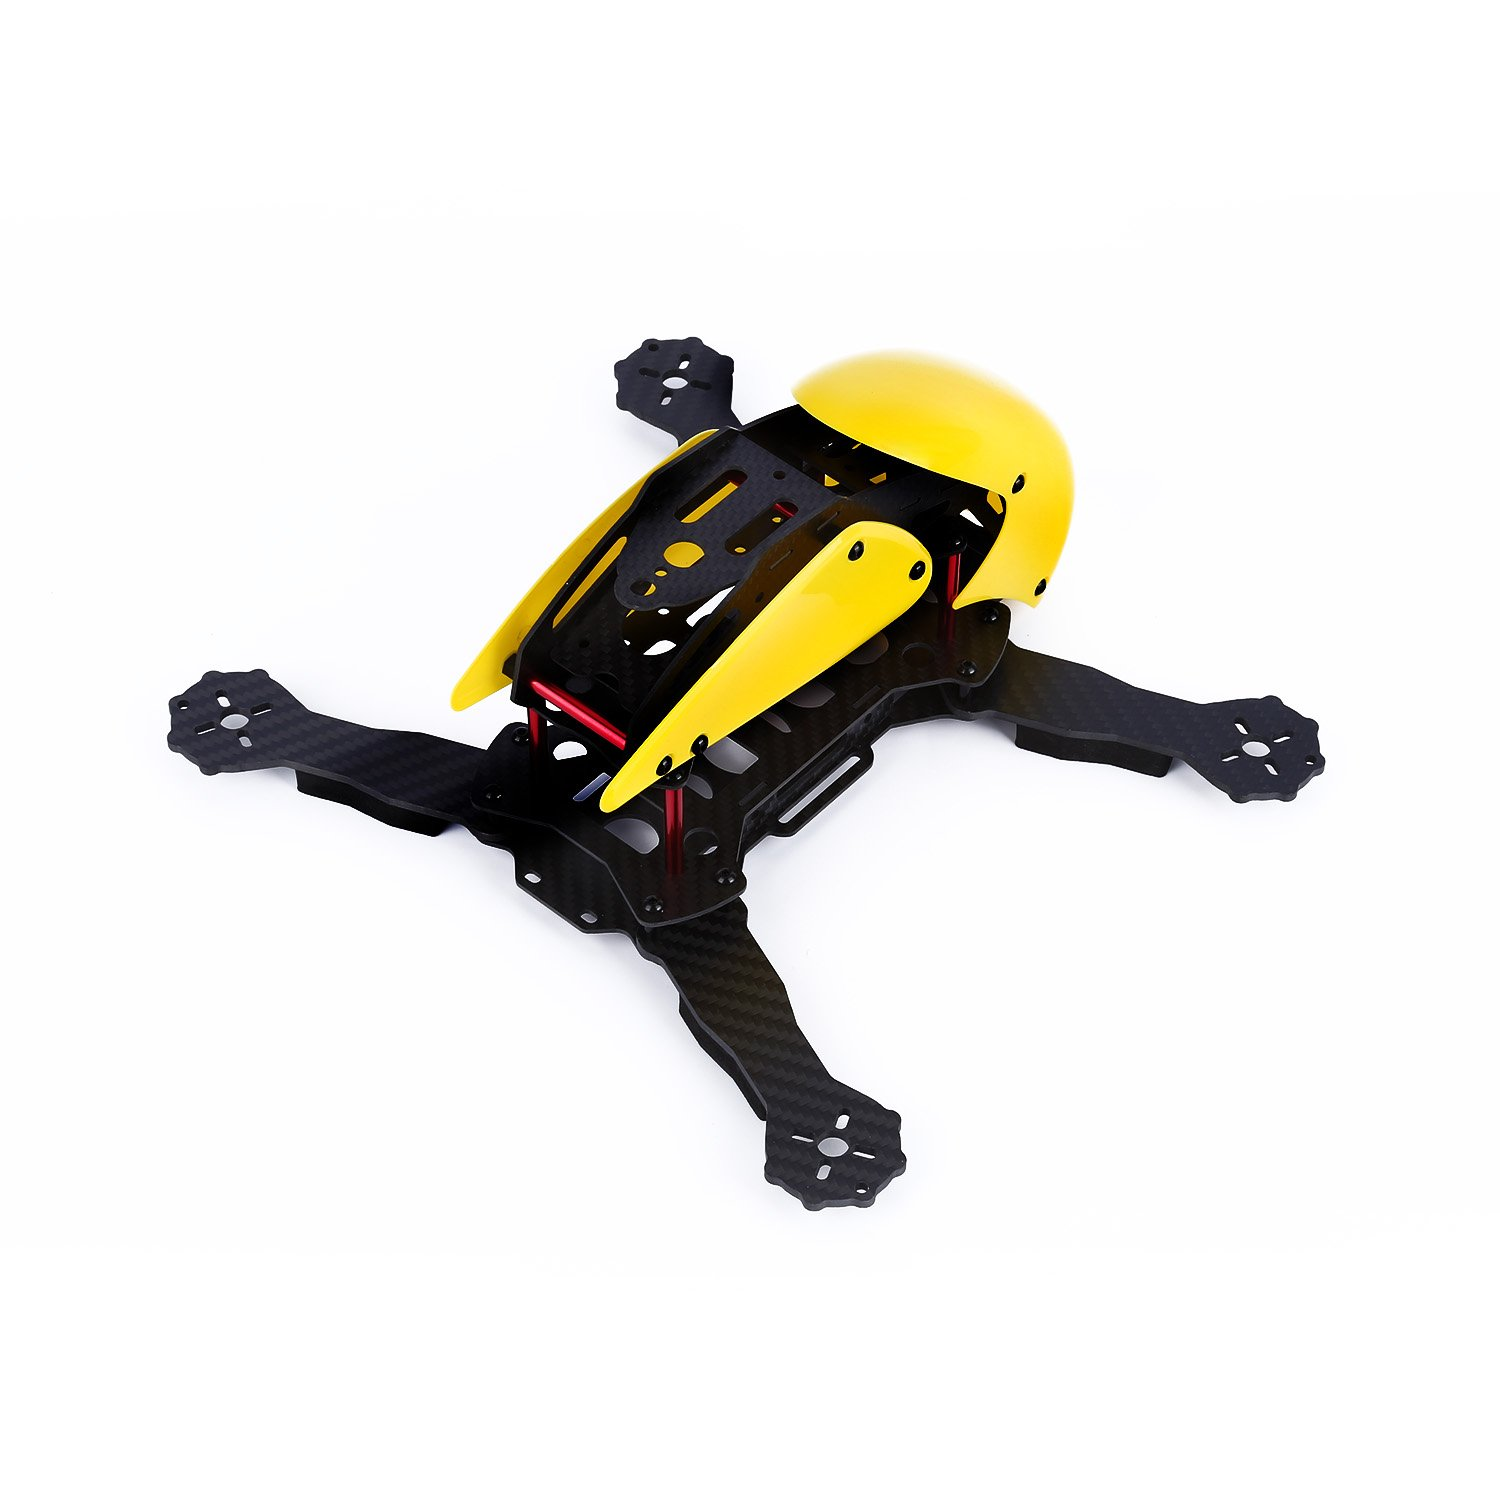 Amazon.com: YKS DIY Robotcat Pure Carbon Fiber Mini 270 Quadcopter ...